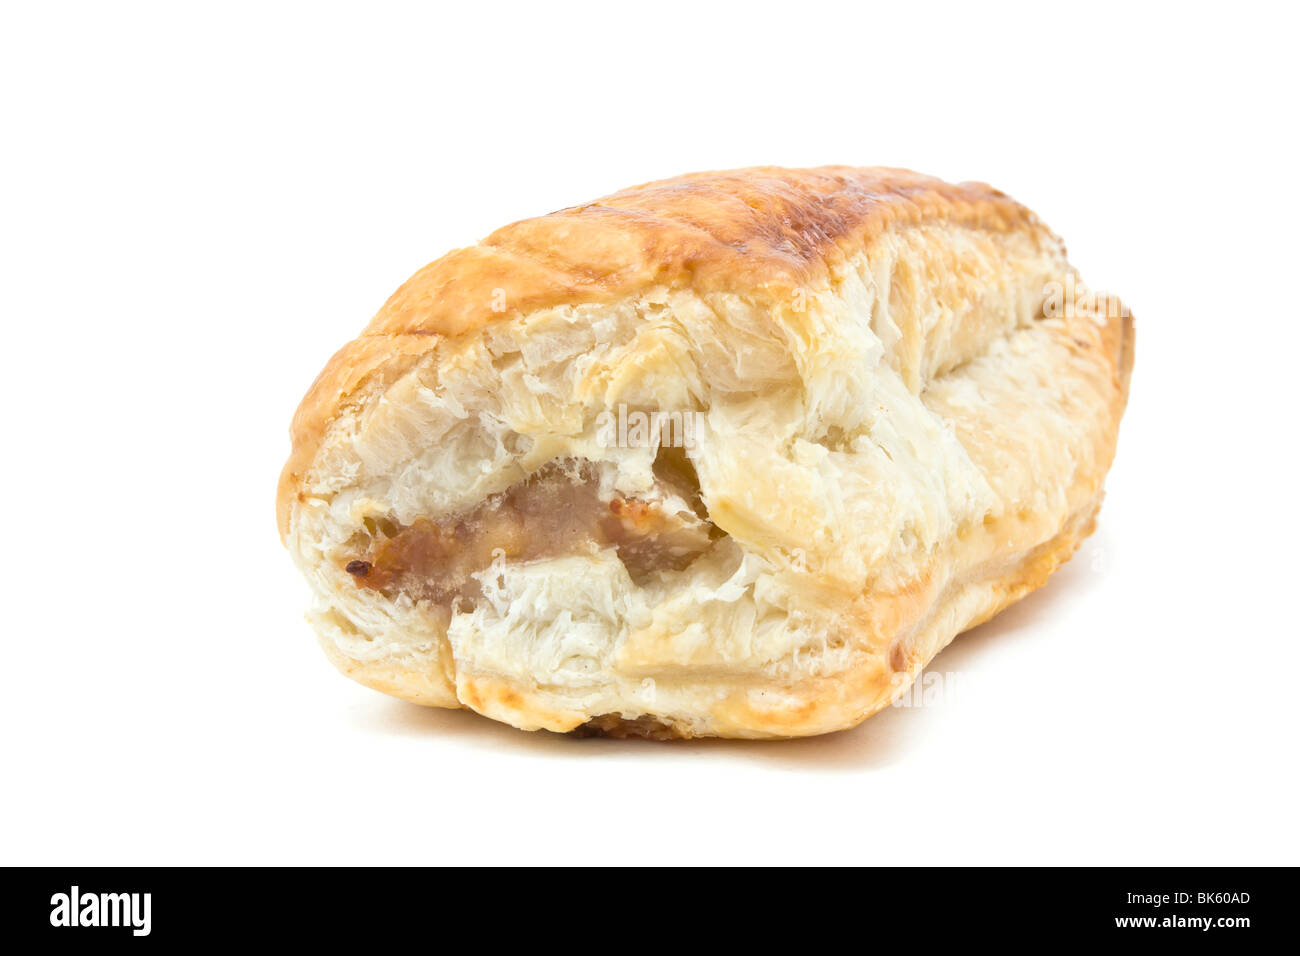 Golden Sausage Roll made from sausage meat and flaky puff pastry. - Stock Image